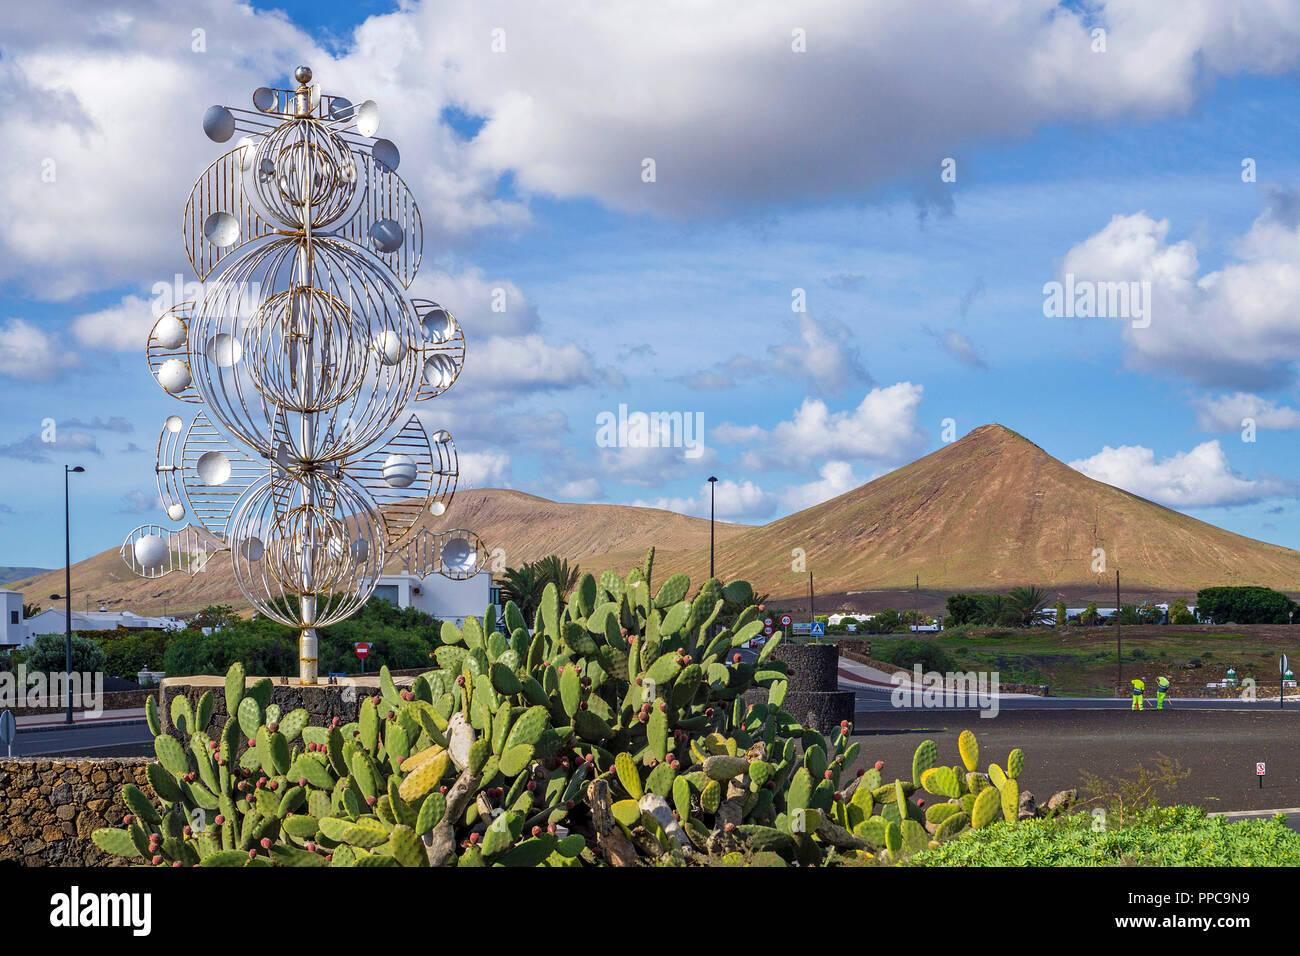 Silver wind chime by Cesar Manrique at Tahiche, Lanzarote, Canary Islands, Spain - Stock Image